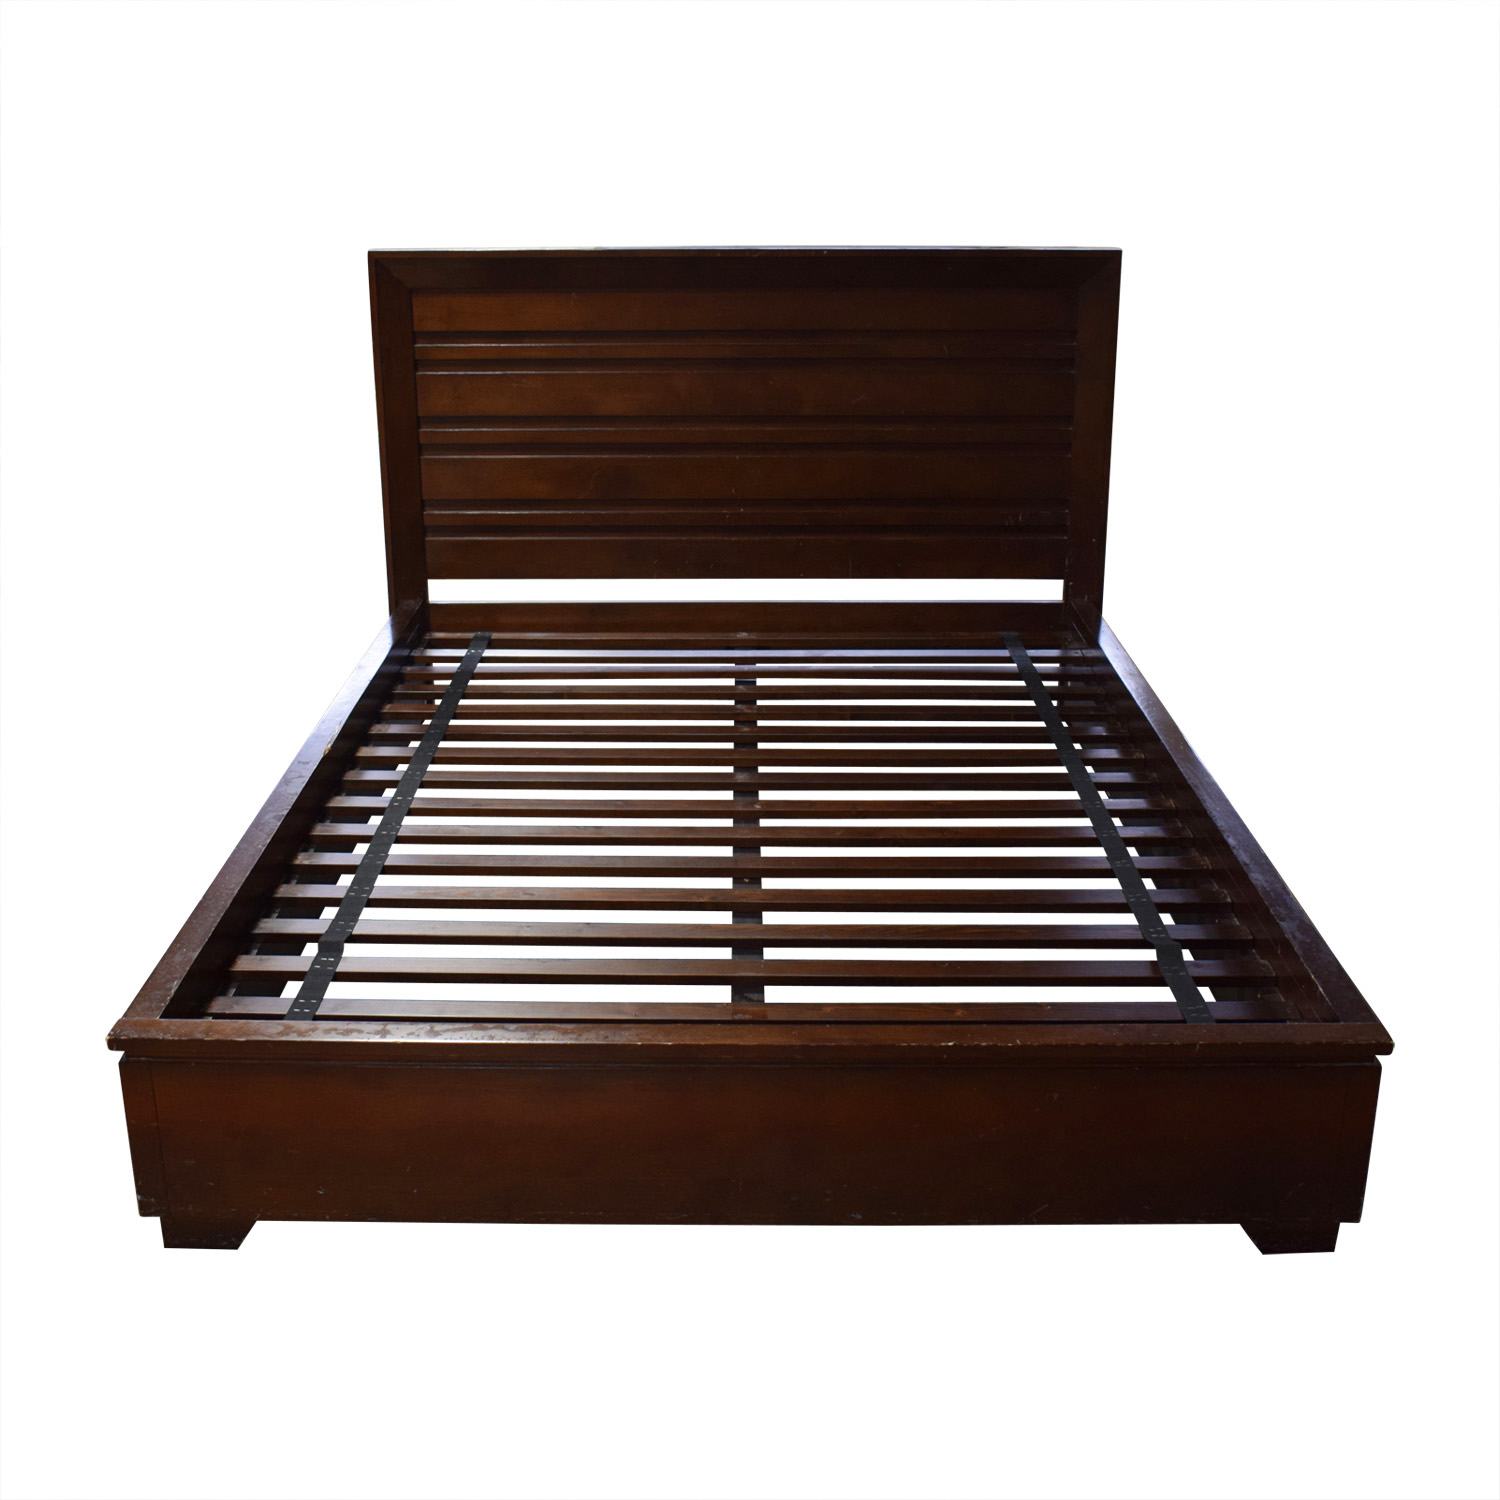 Crate & Barrel Crate & Barrel Queen Bed Frame second hand